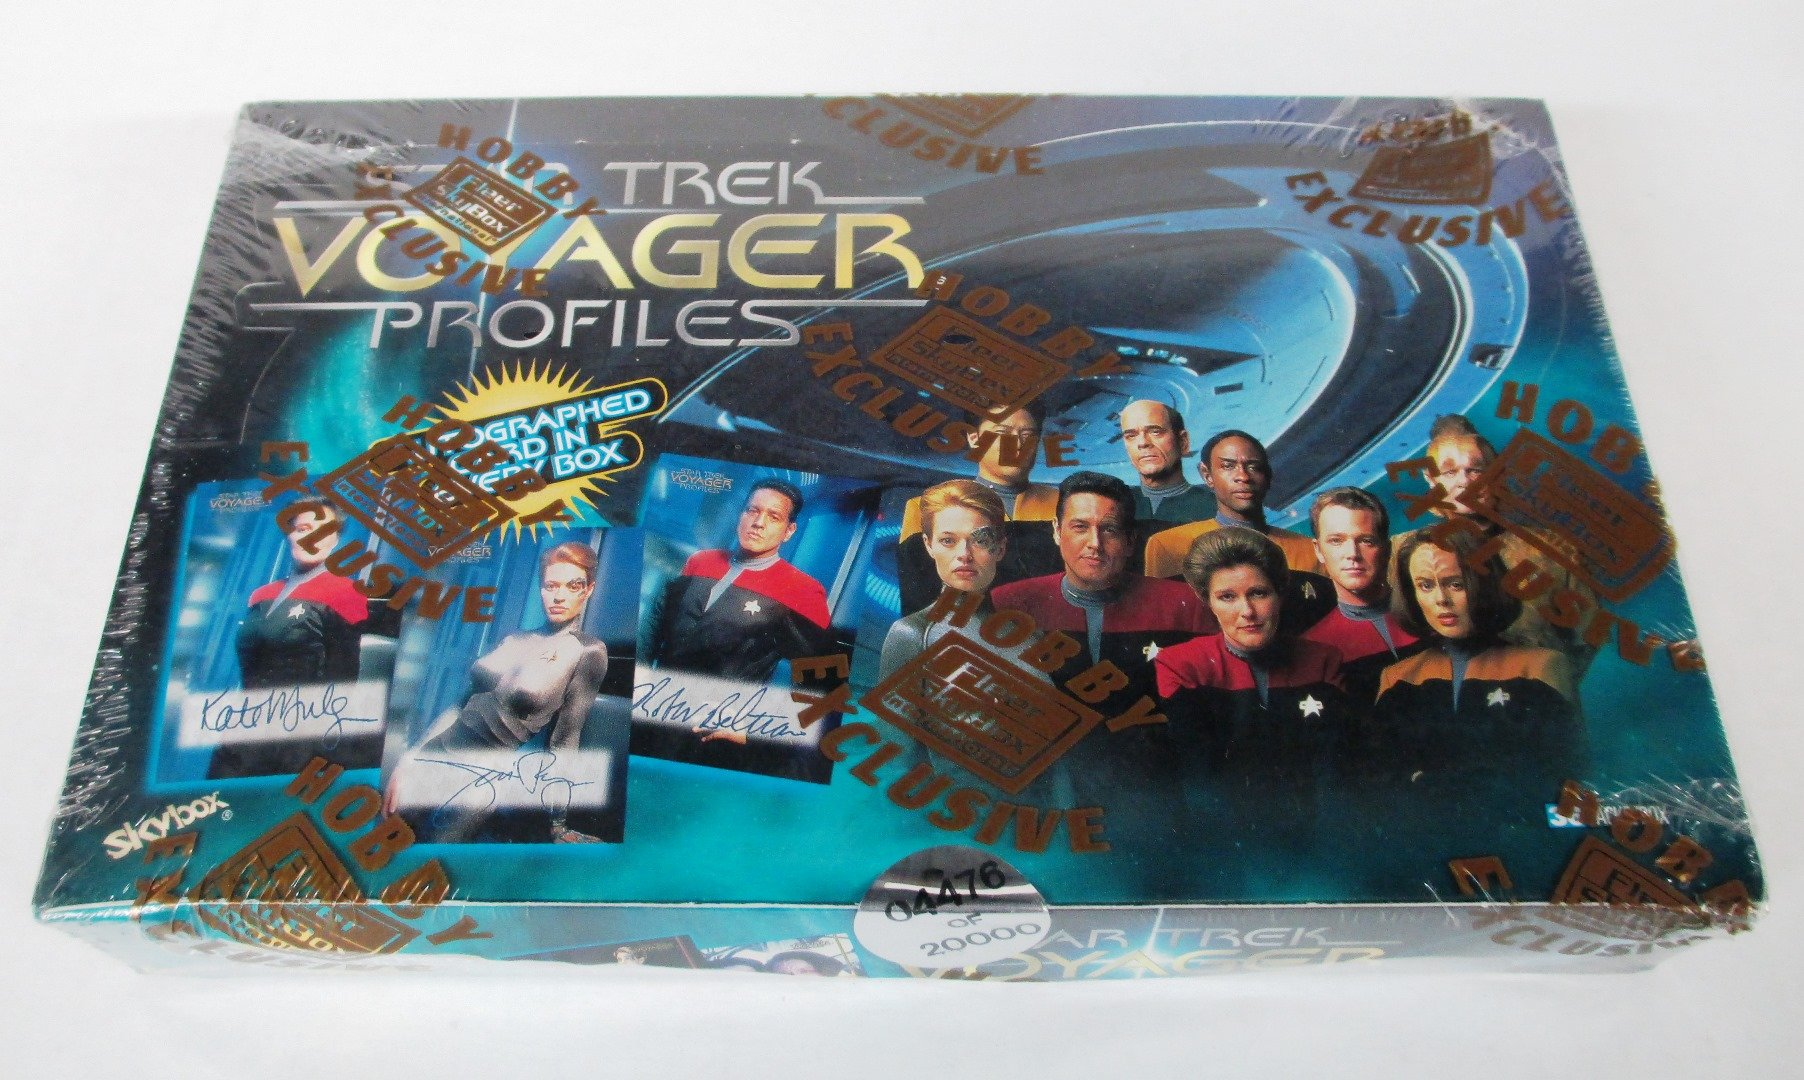 Star Trek Voyager Profiles Trading Cards Box Set - With Autographed Card! by Star Trek